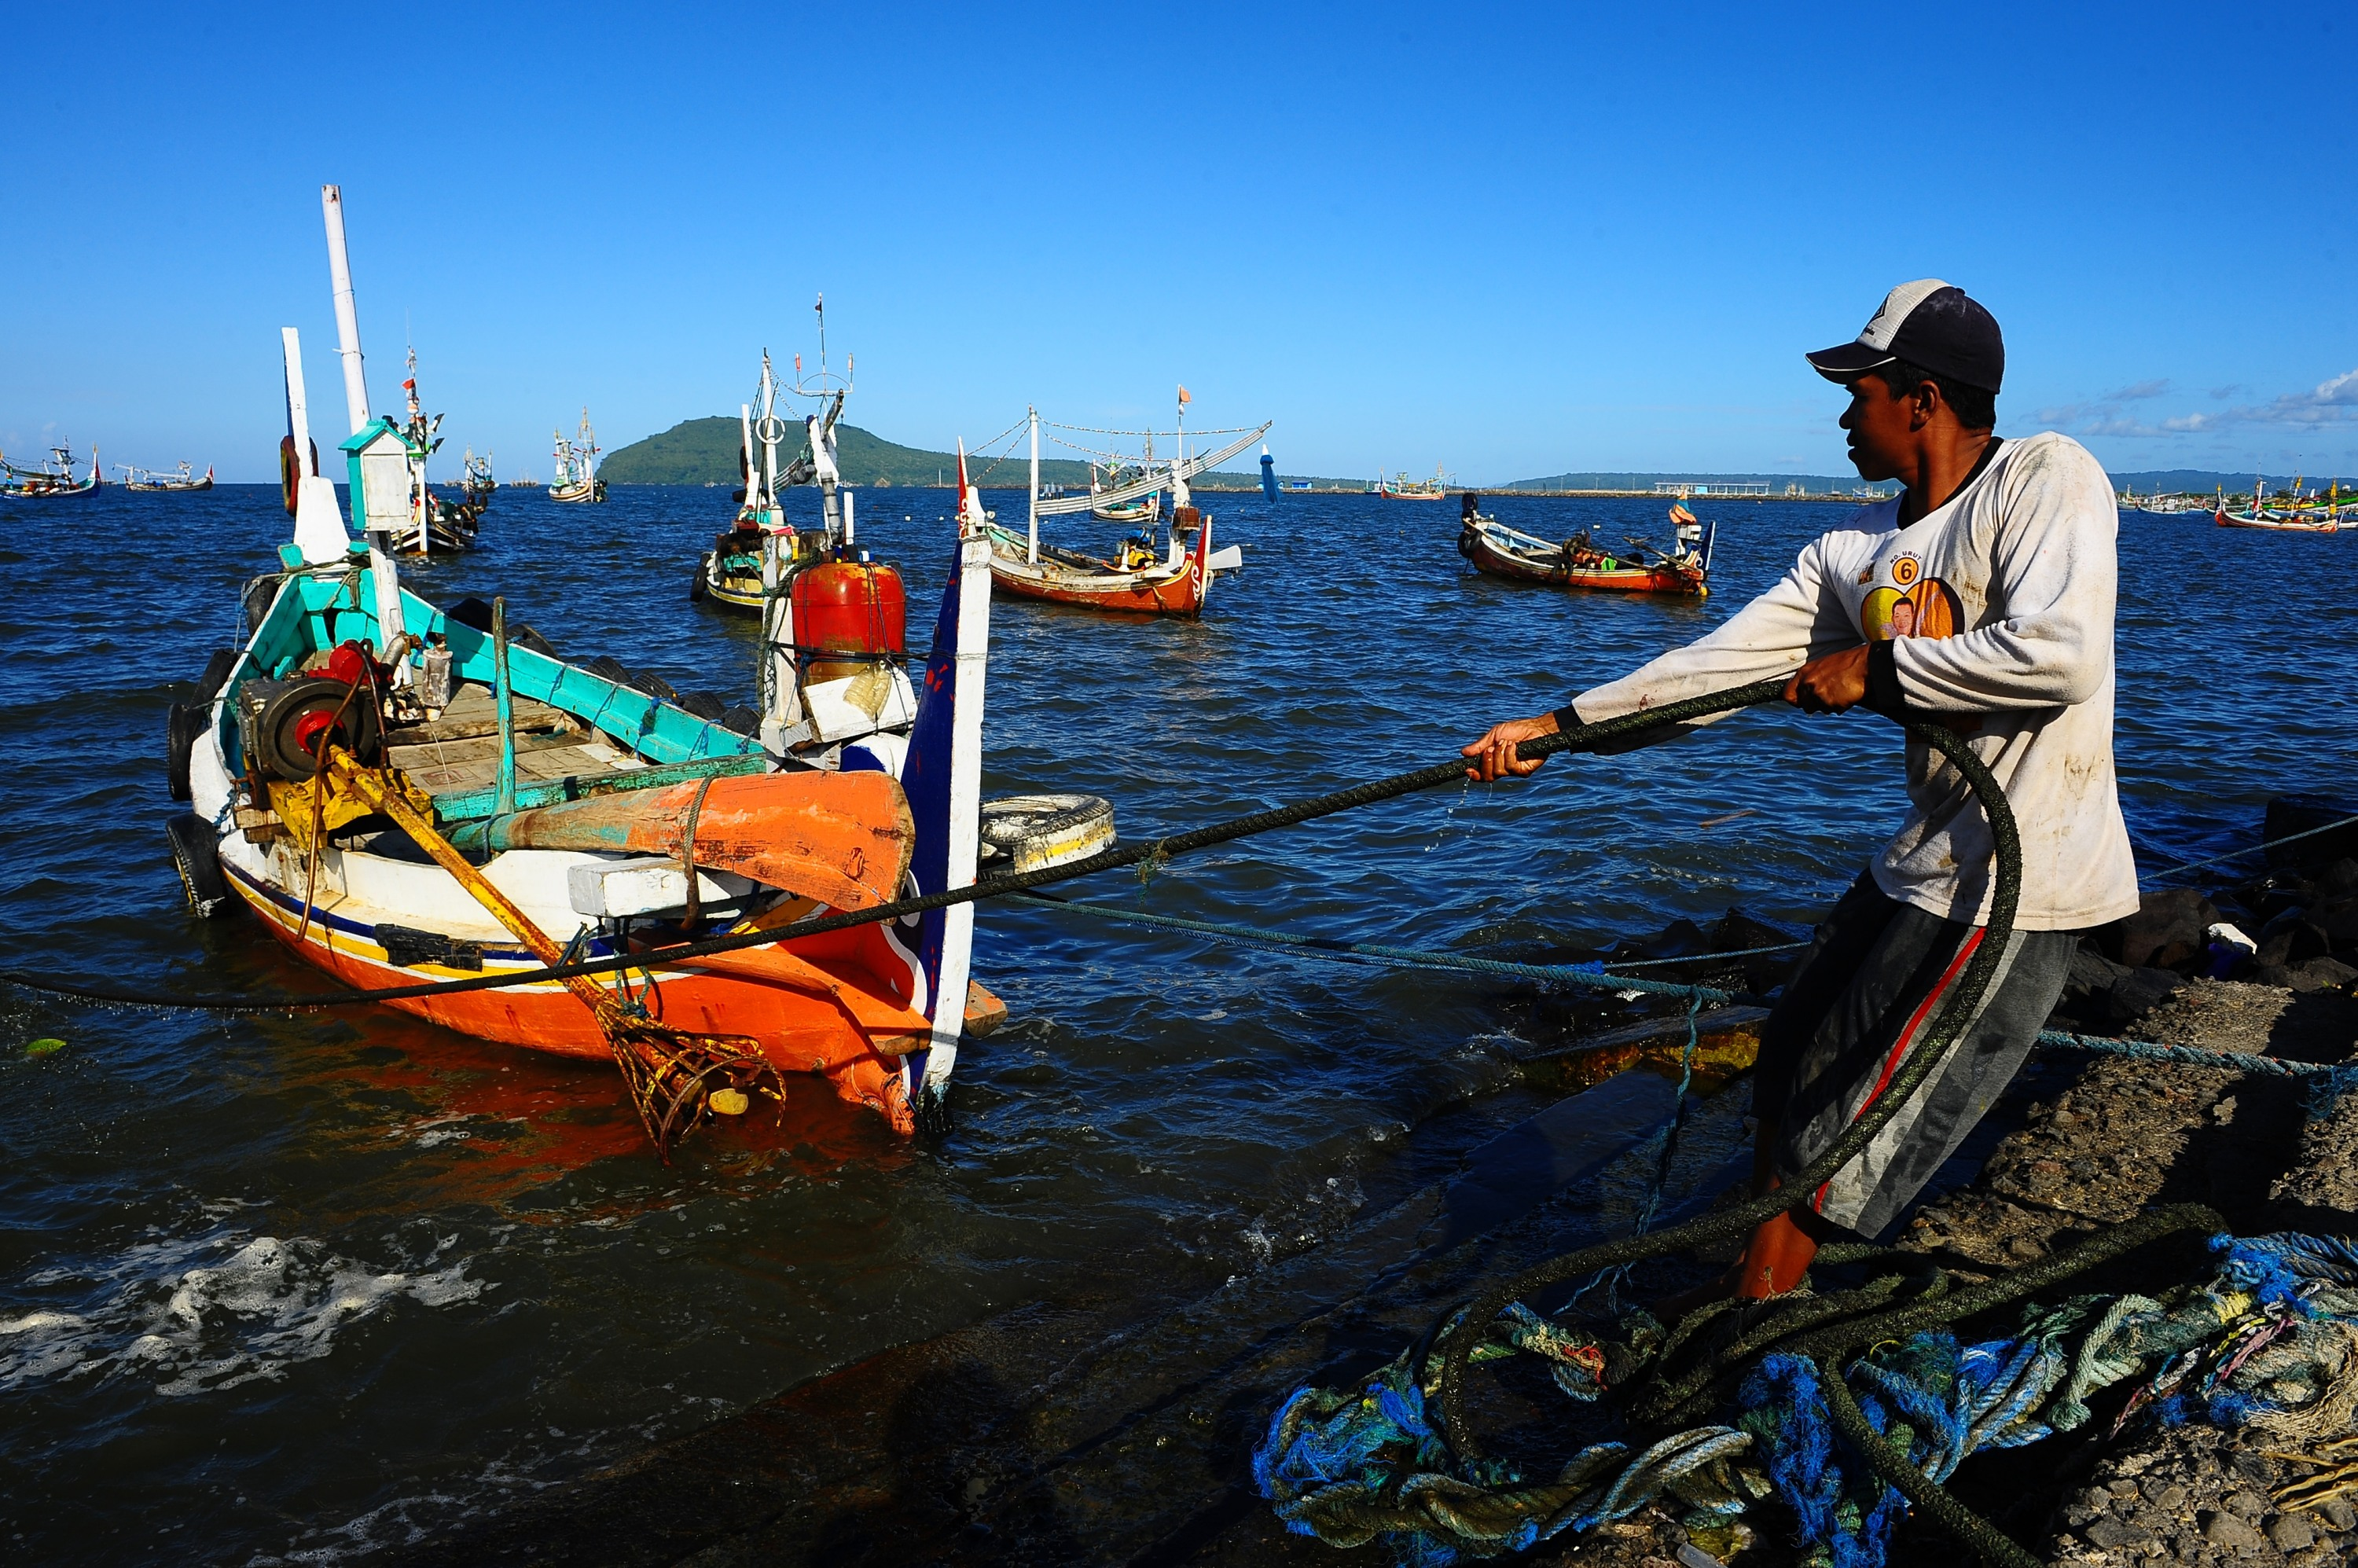 An Indonesian fisherman pulls the boat docked at Muncar Port on May 25, 2014, in Banyuwangi, Indonesia. Indonesia has become one of the major exporters of meat and shark fins in the world